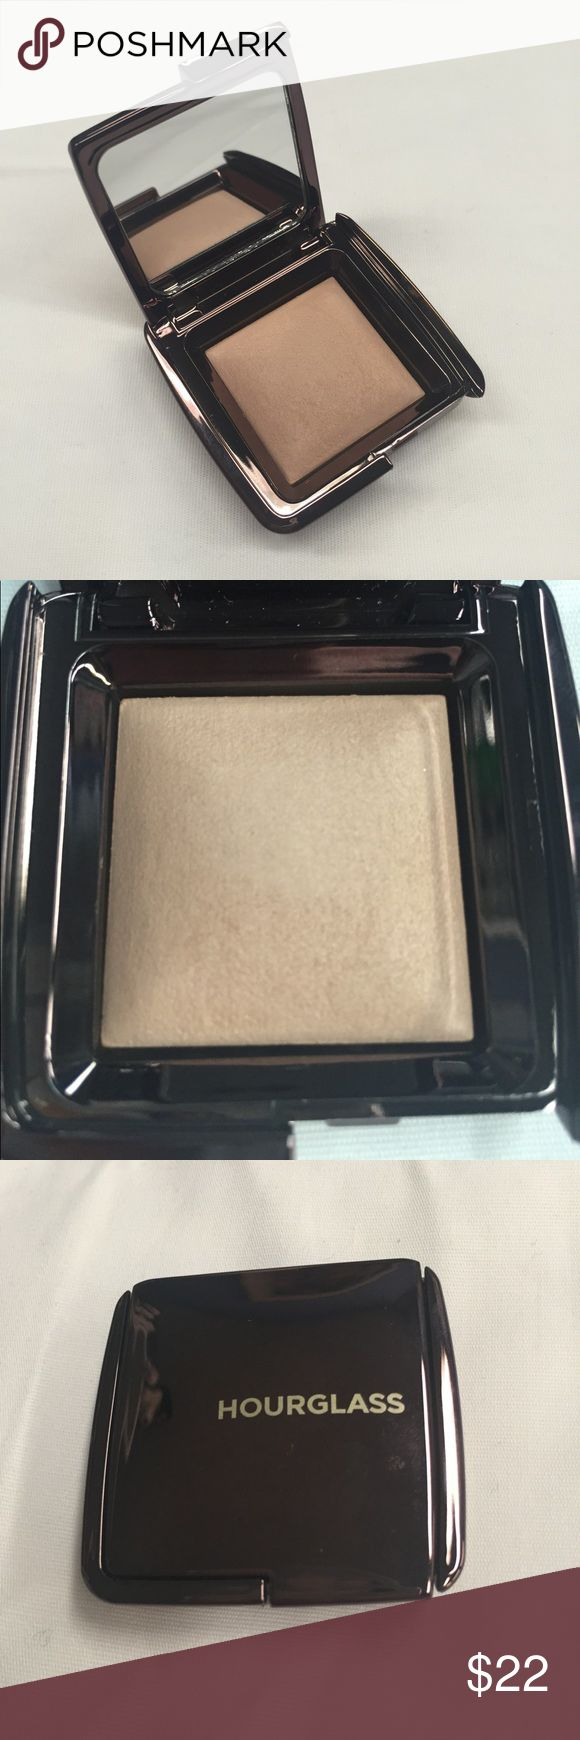 NIB Hourglass Ambient Lighting Powder Dim Light Ambient Lighting Powder in Dim Light from Hourglass - new in box, never used or swatched. Minor shelf wear on the box but the item itself is perfect. 0.049 Oz. travel size. 100% authentic and purchased from Sephora. Hourglass Makeup Luminizer